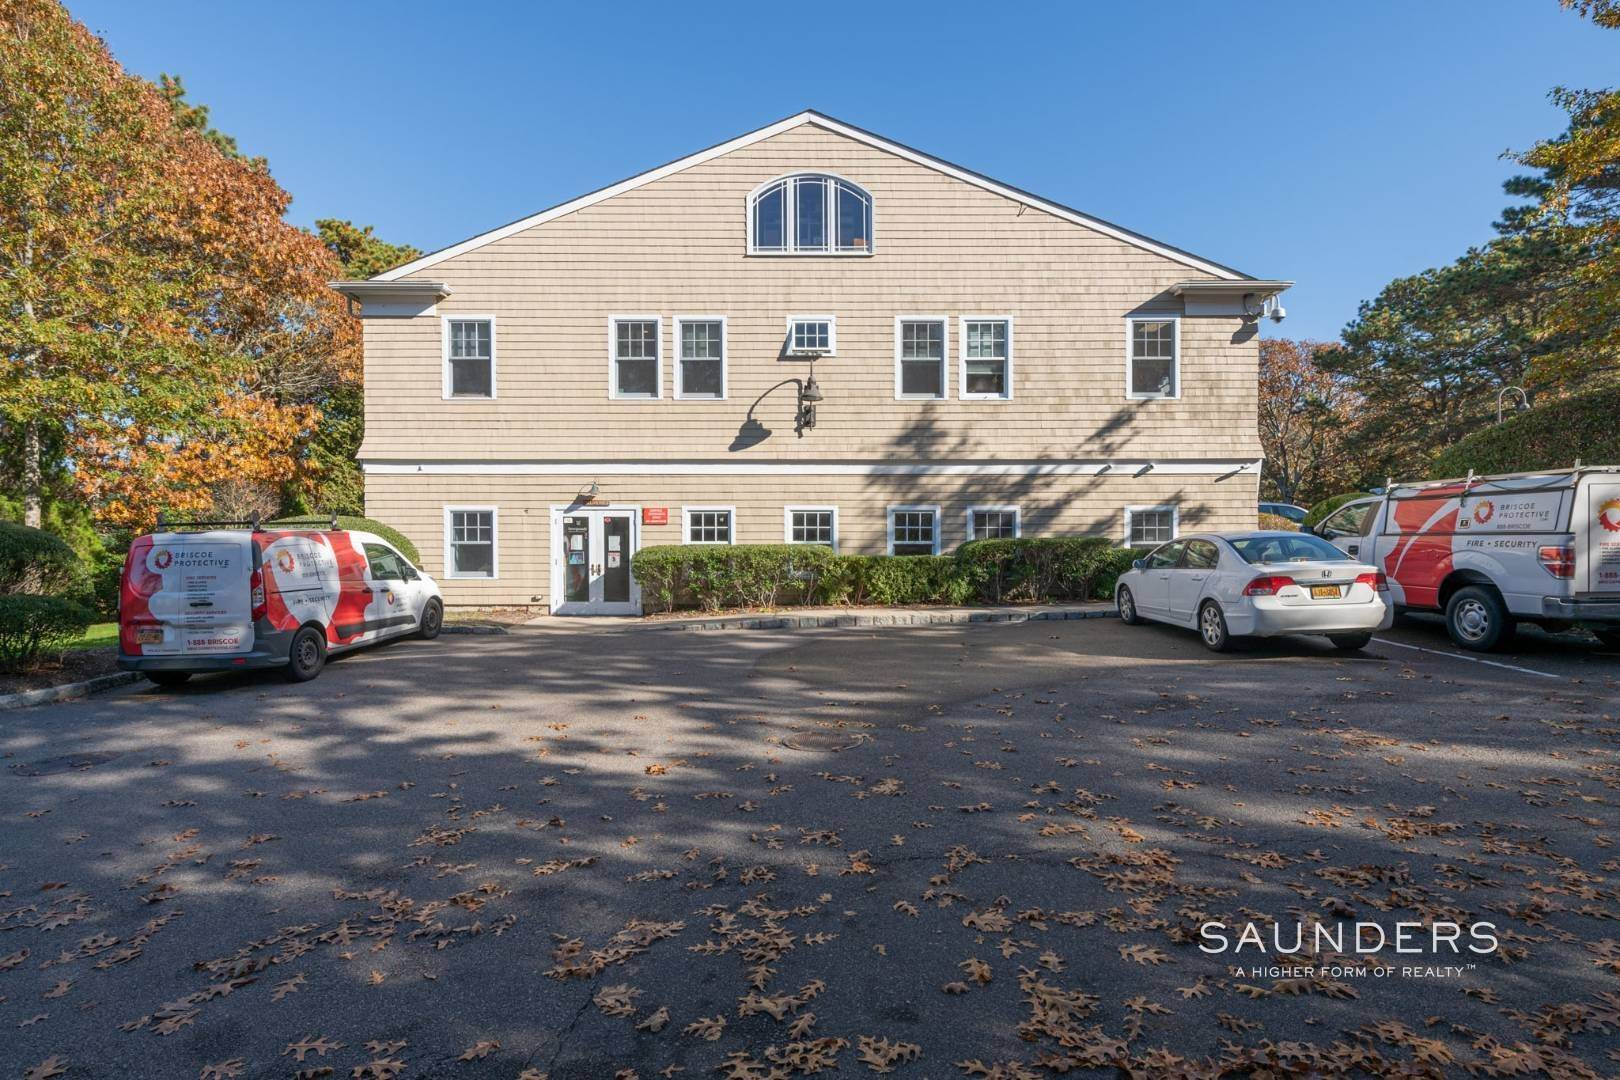 Commercial at Southampton Office Property For Investor Or User 2036 County Road 39, Southampton, Southampton Town, NY 11968